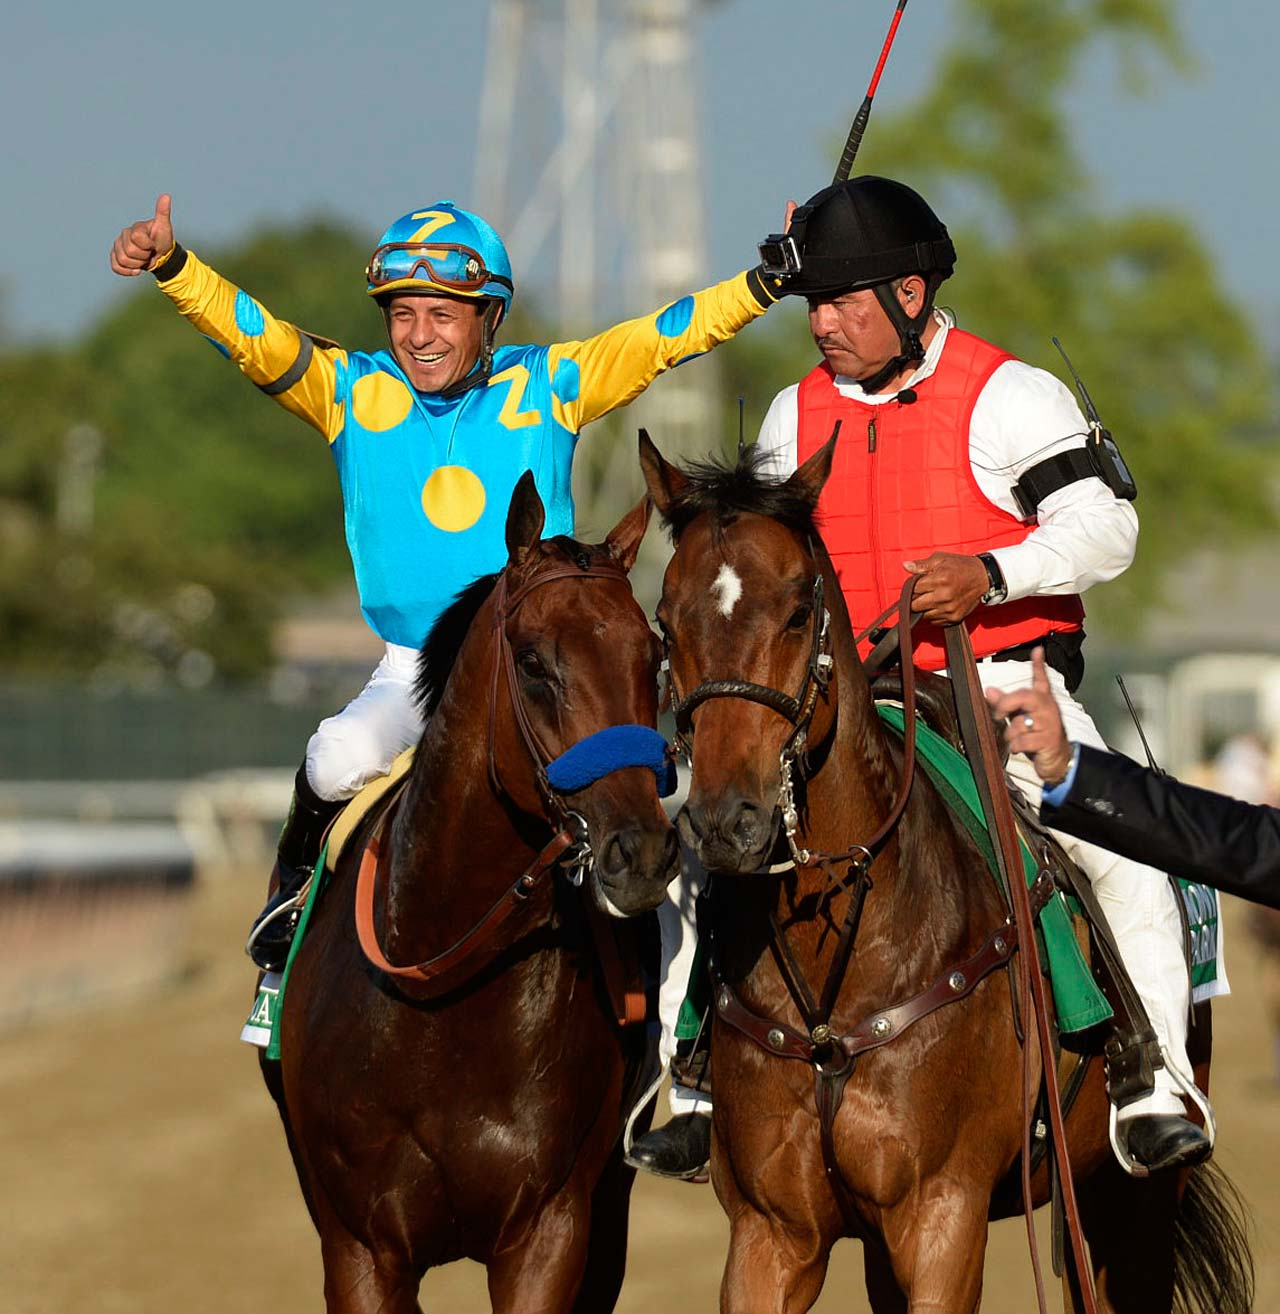 Jockey Victor Espinoza ended his own frustrating history in the Triple Crown. He got it done with his record third shot after failing to win in 2002 and in 2014 on California Chrome. (Text credit: AP)